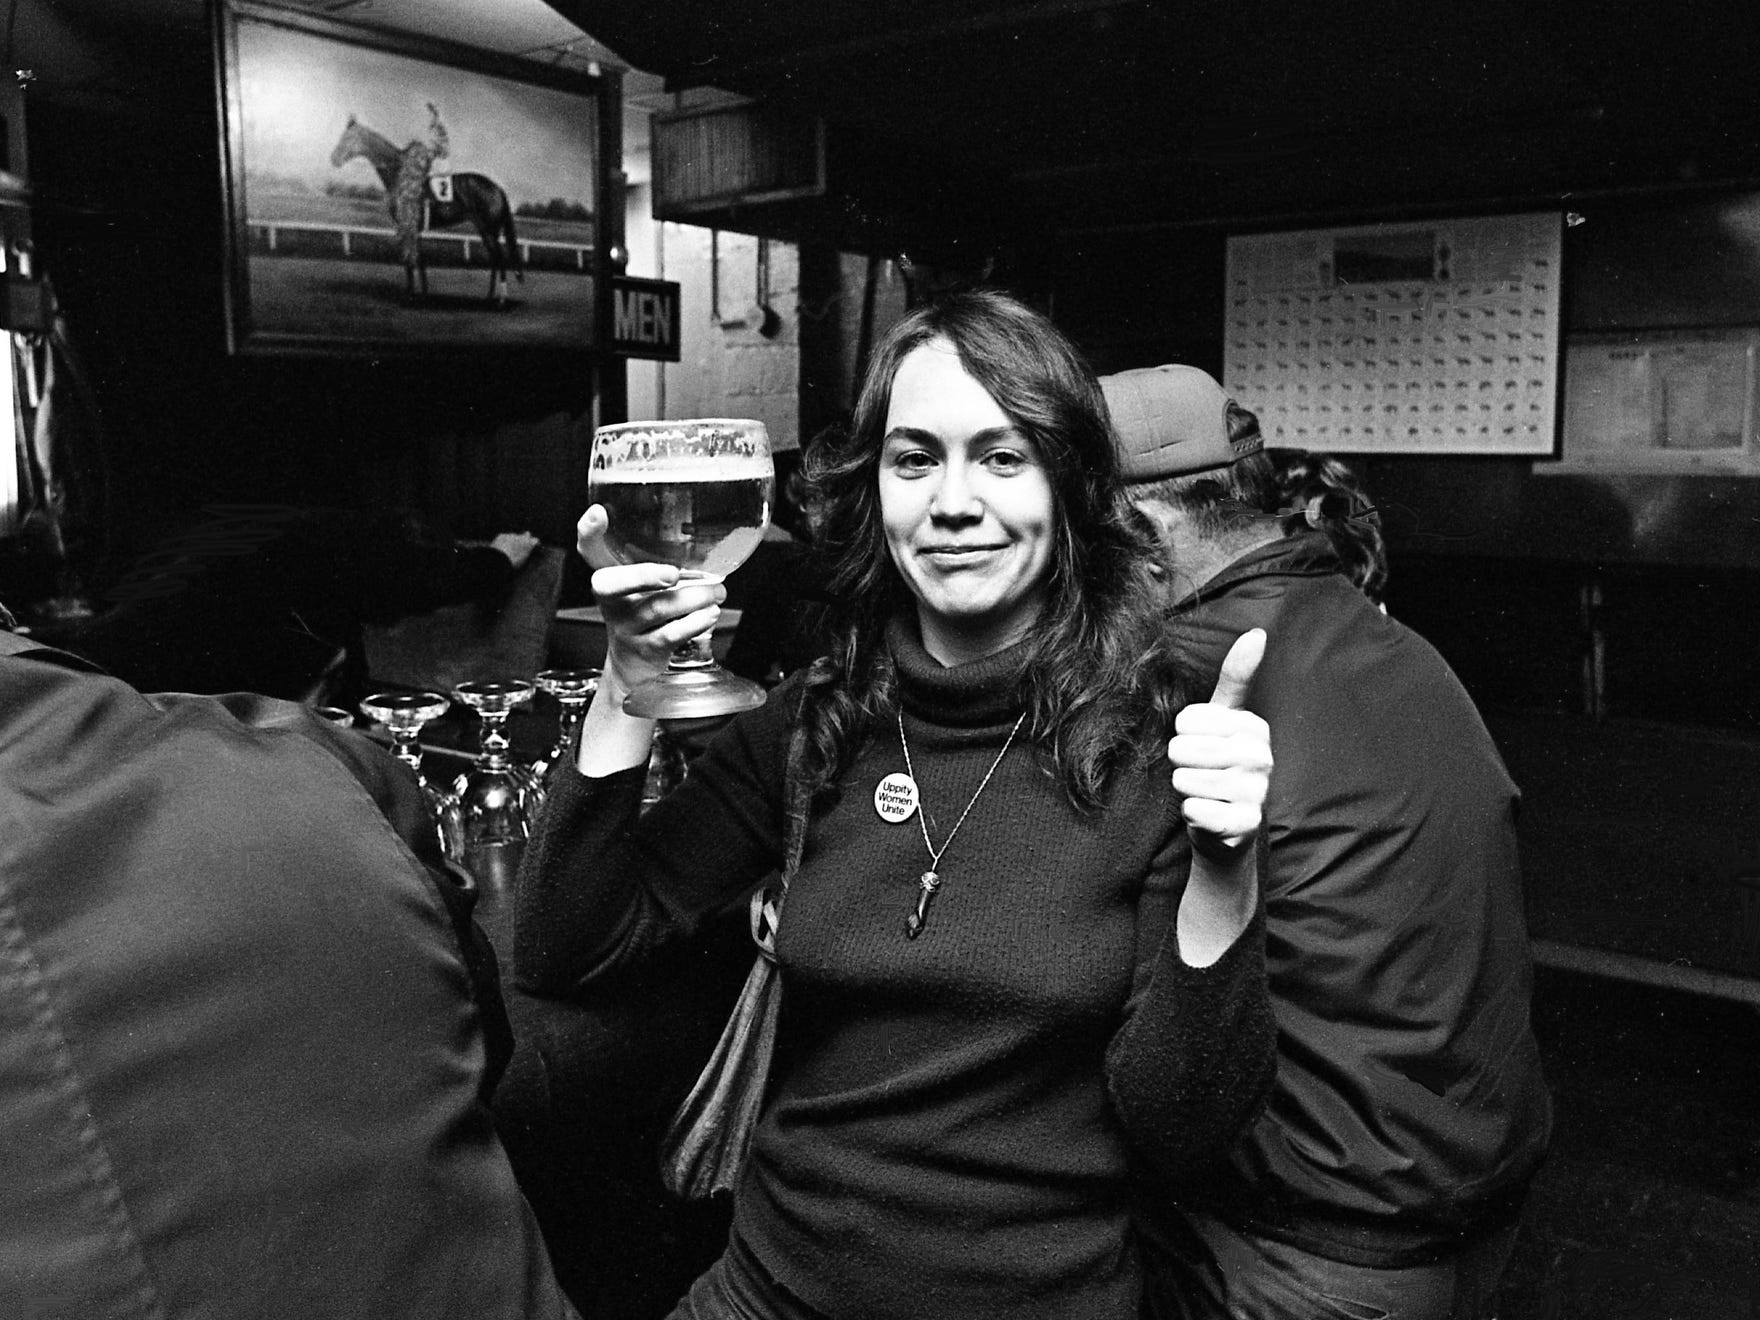 Linda Joyce Simpson gives the thumbs up sign as she hefts a mug of beer following an exercise in equal rights at the bar of the Gerst Haus Restaurant March 1, 1975. Angered by reports that the restaurant had refused to serve unescorted women at its bar, about a dozen women from Nashville Women's Center marched in at high noon to test the policy.